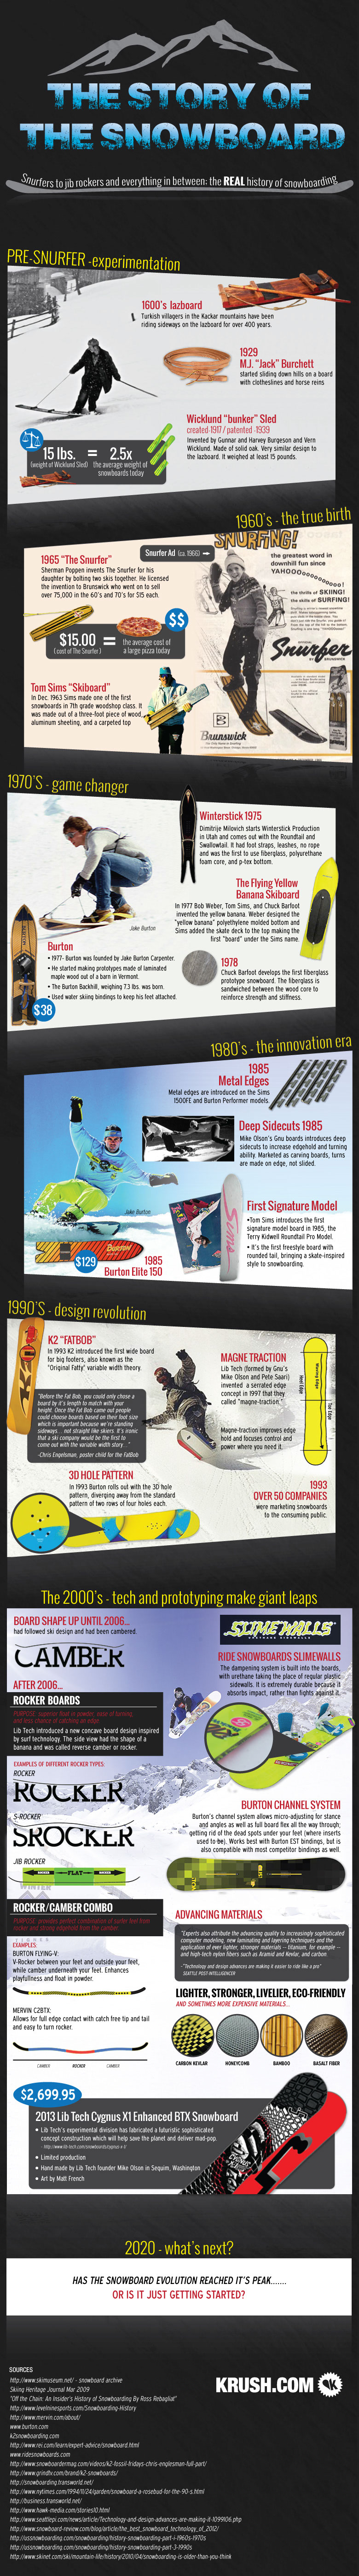 Snowboard Chronicles-Infographic